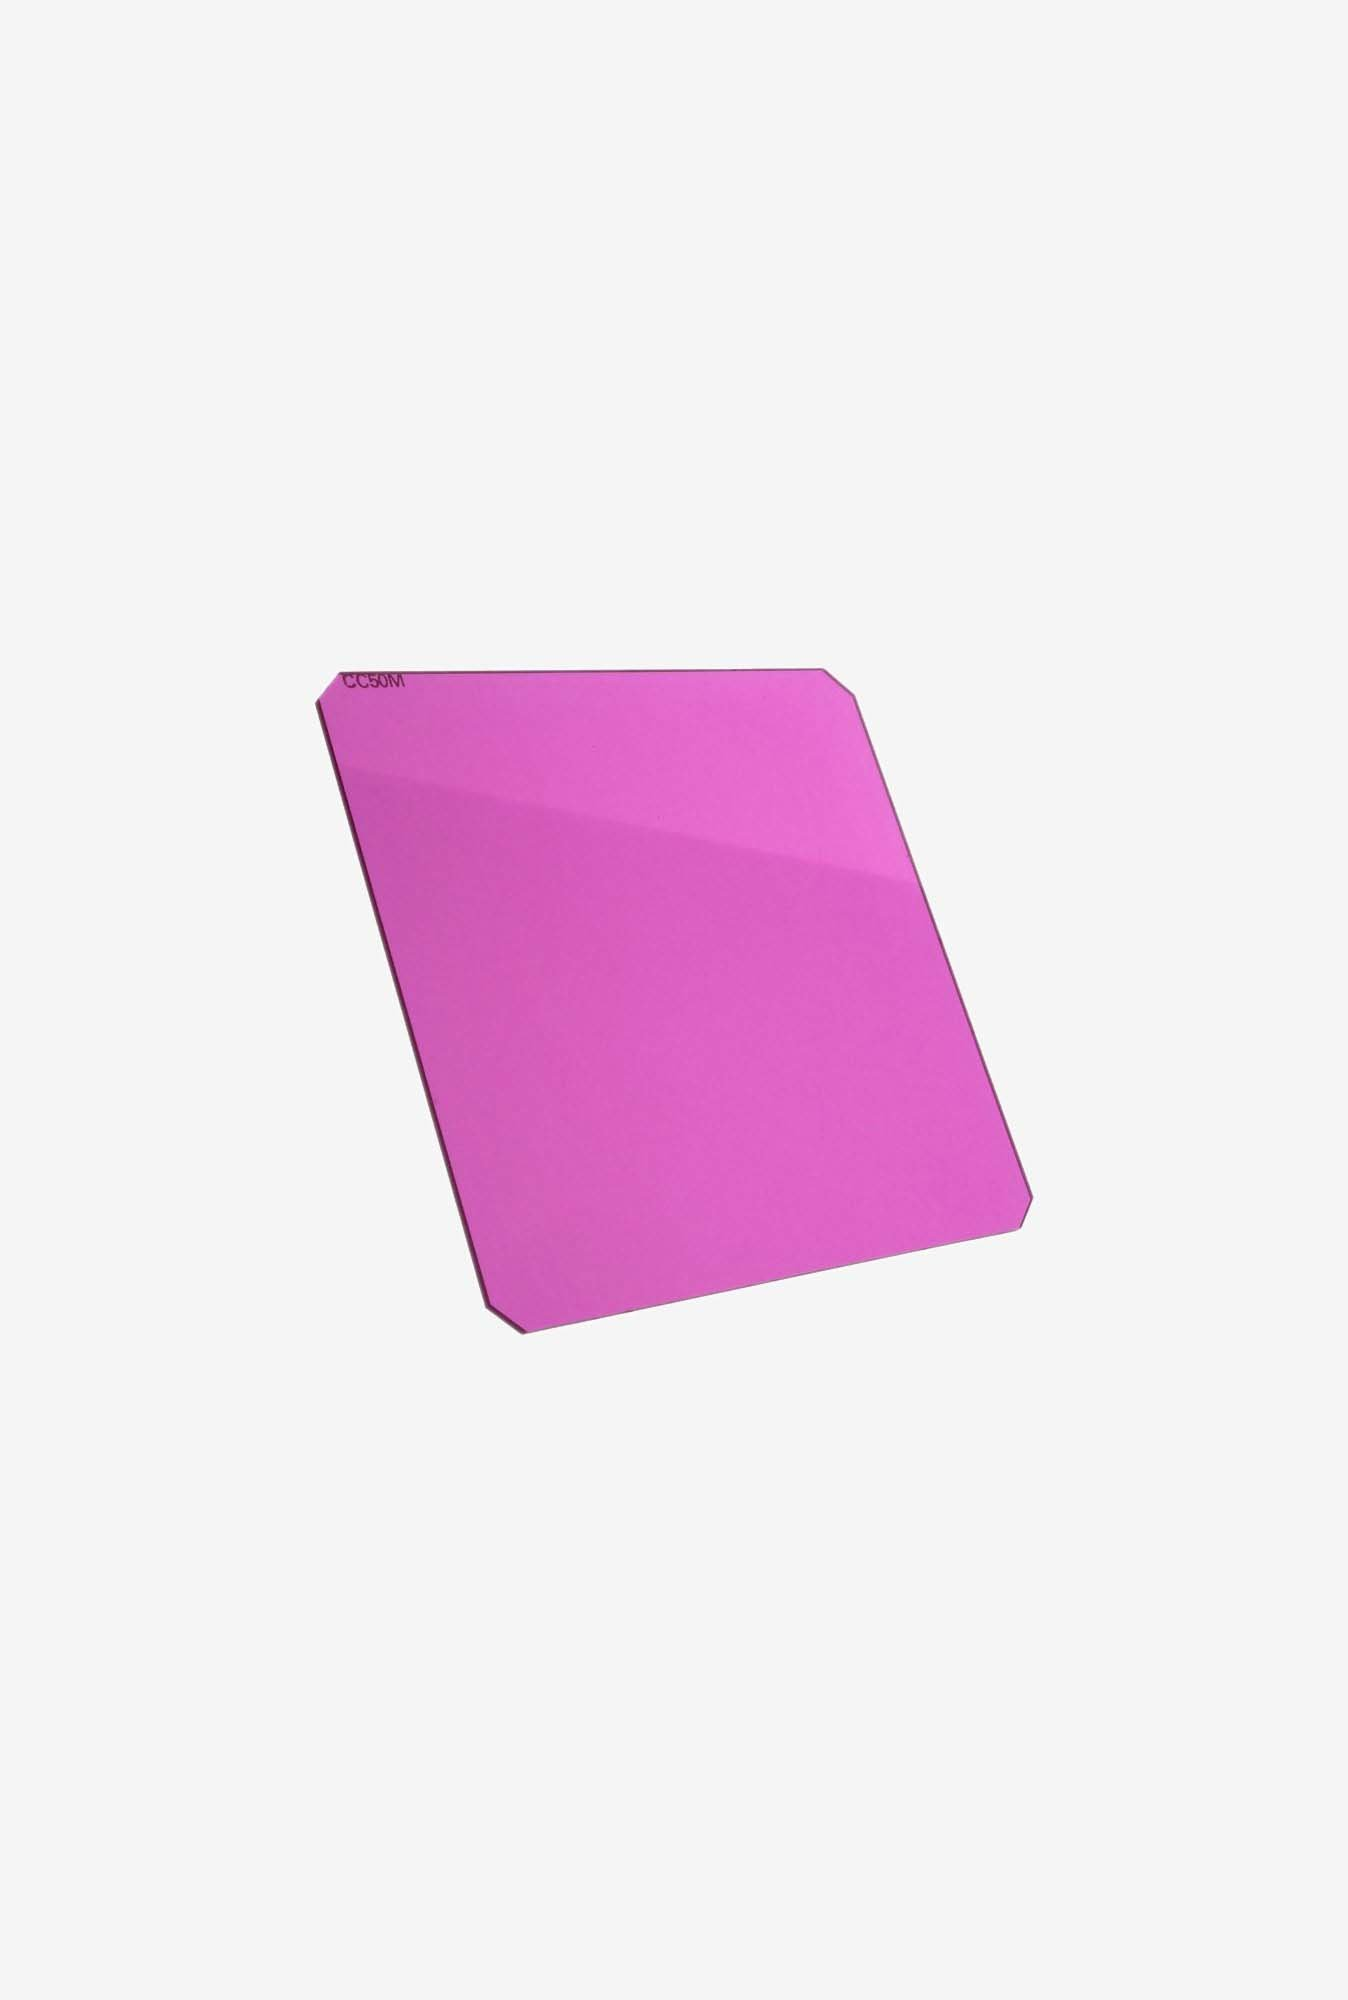 Formatt Hitech 67x85mm Color Correction Filter (Magenta 30)